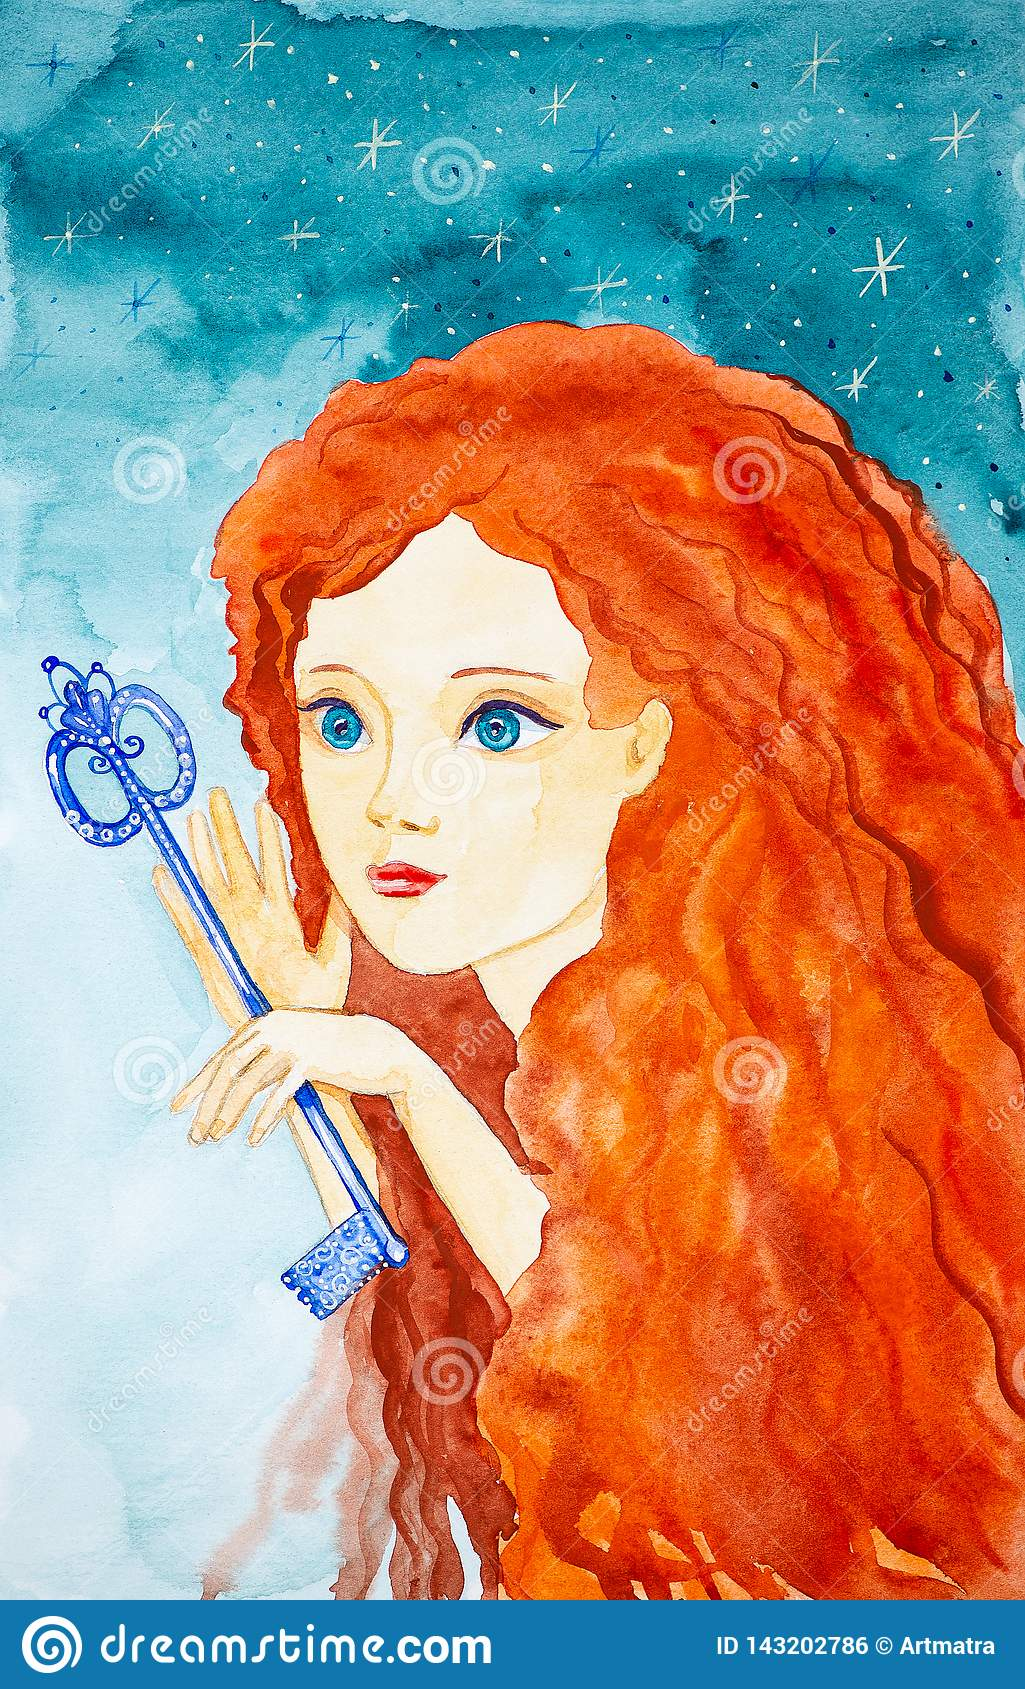 Portrait of a young beautiful girl with long red hair. The girl is holding a fabulous key.Watercolor illustrations on the